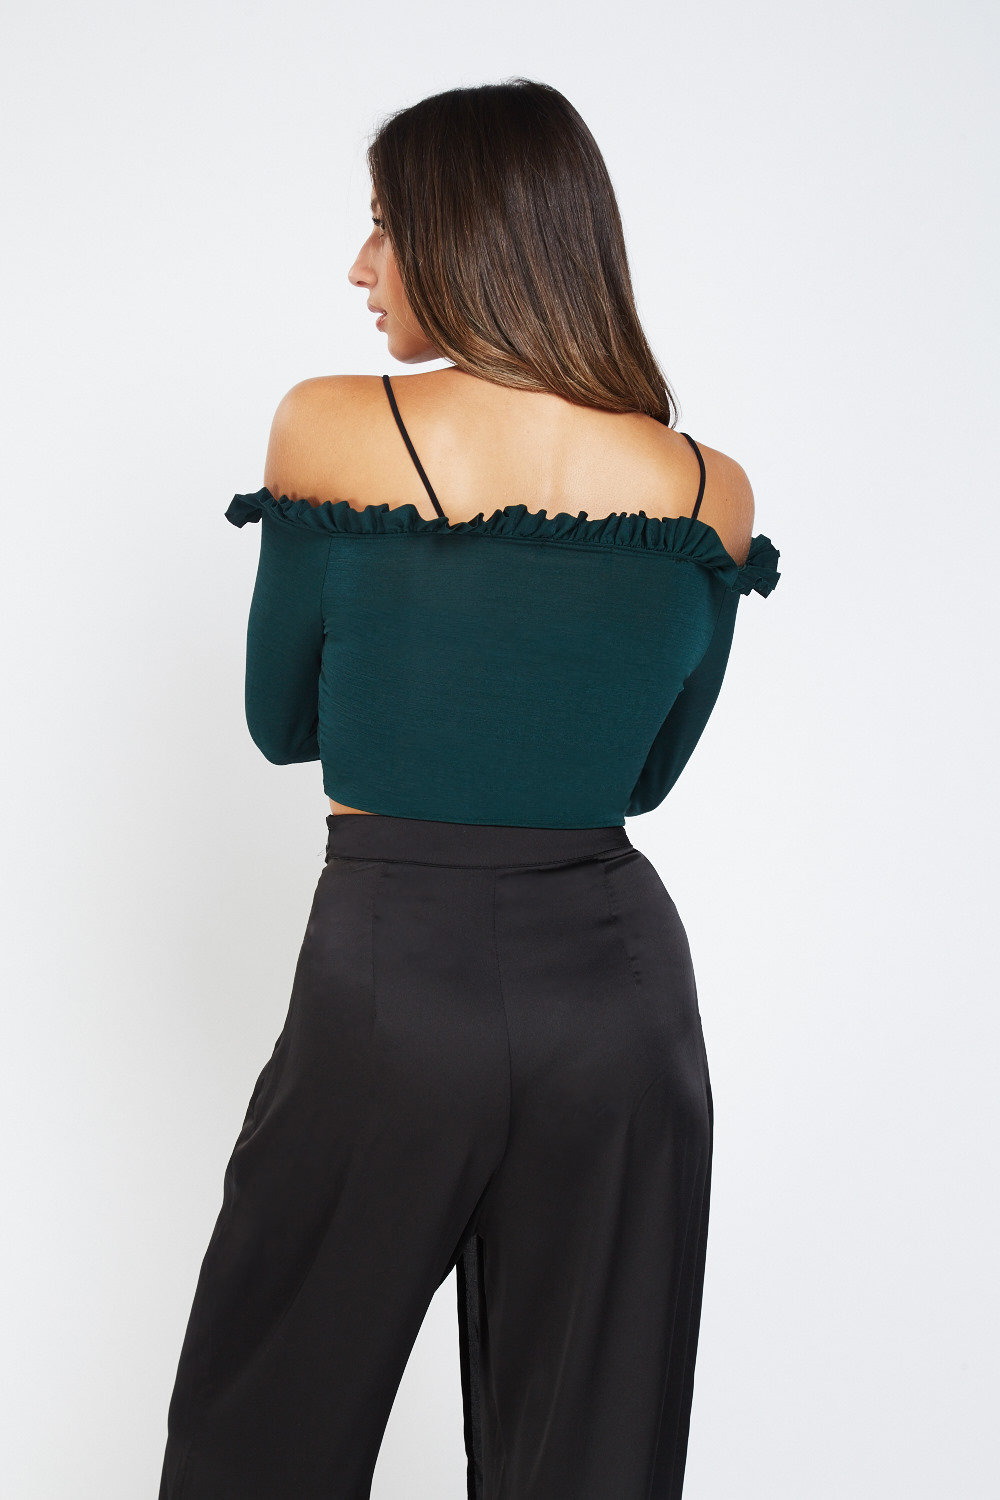 b3bc7570dfd0f Frilly Cold Shoulder Crop Wrap Top - Just £5